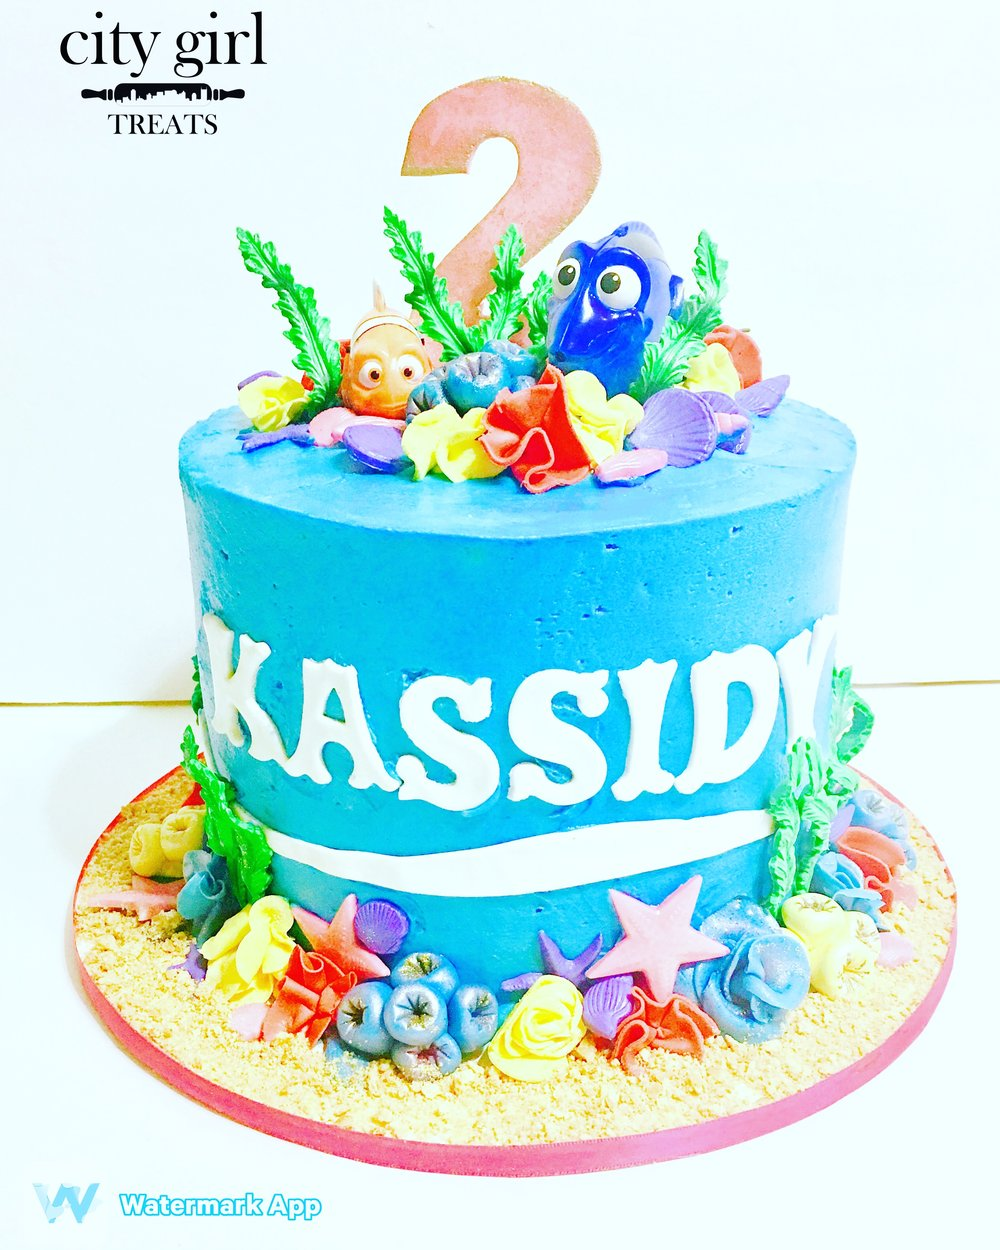 Designer Cakes Nashville TN Based Bakery, City Girl Treats Nashville Children Party Cakes